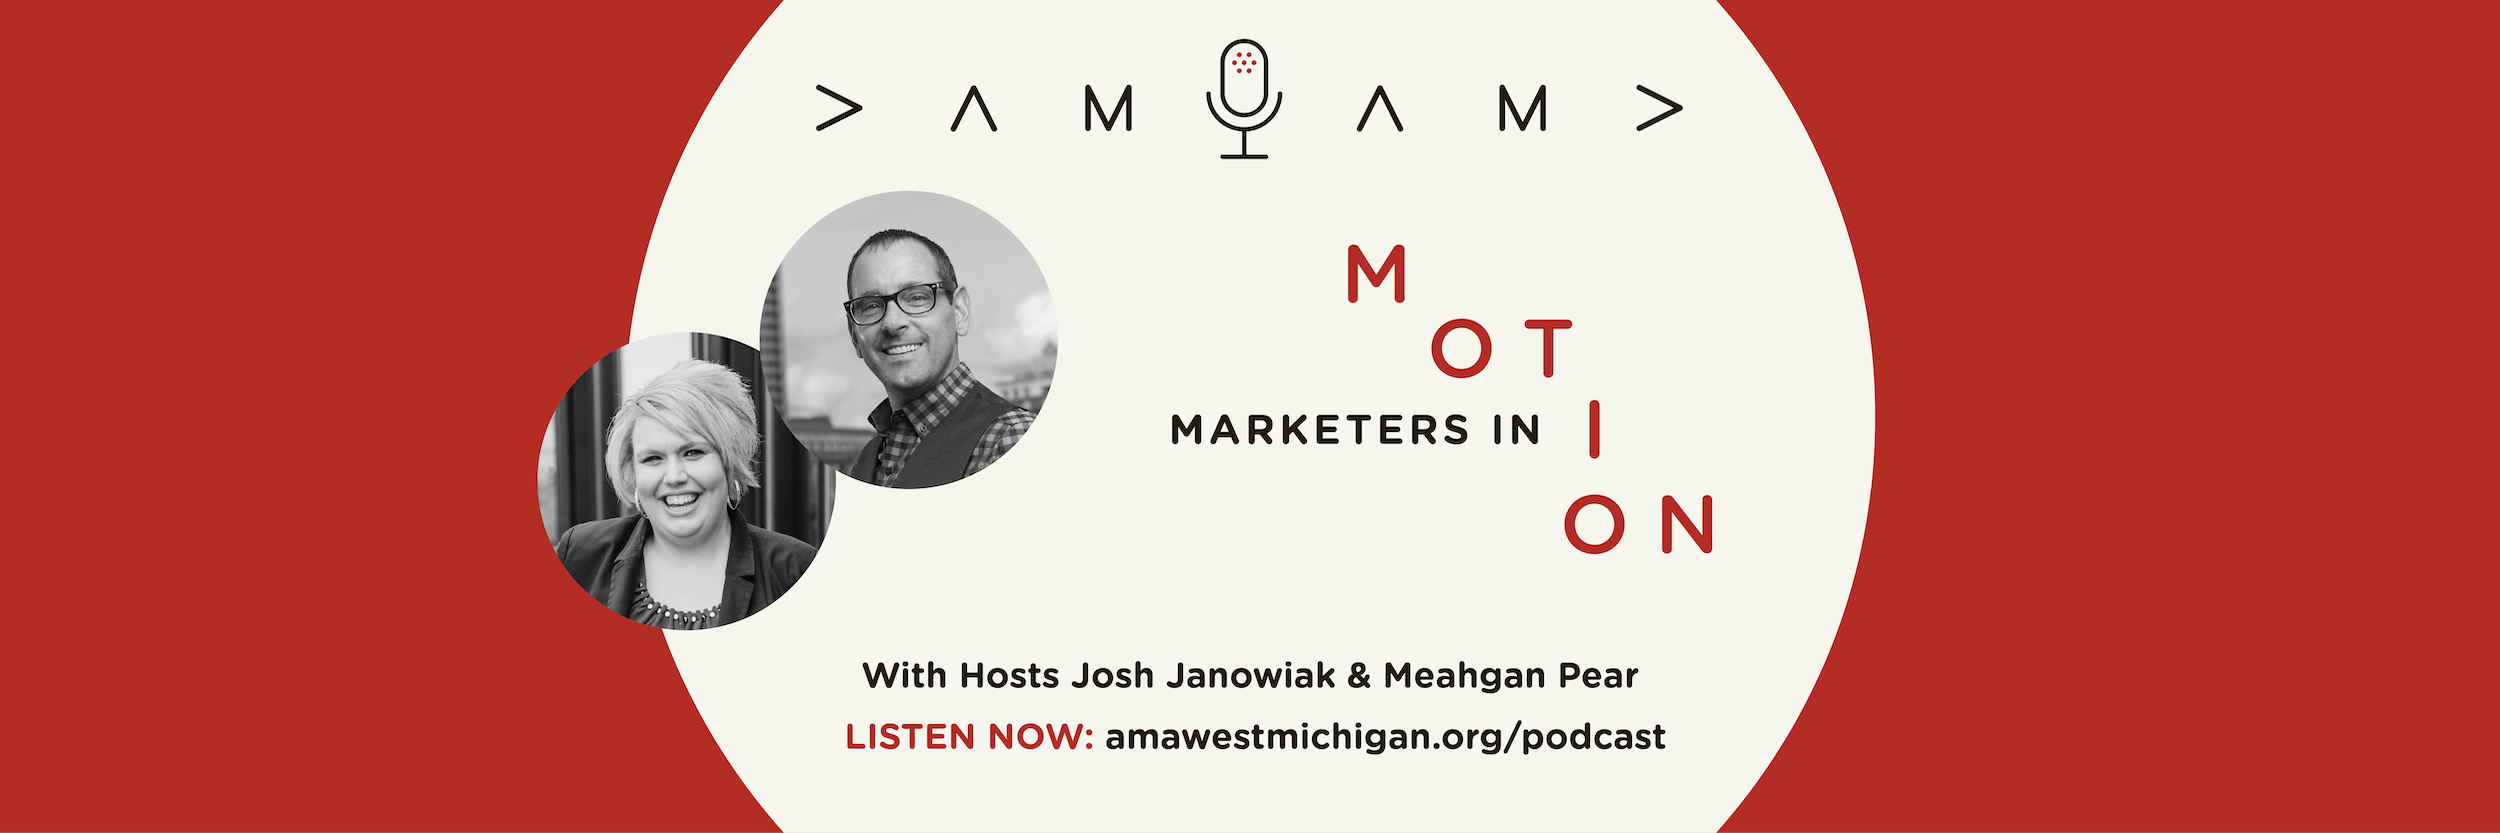 AMA West Michigan Podcast Website Banner Image